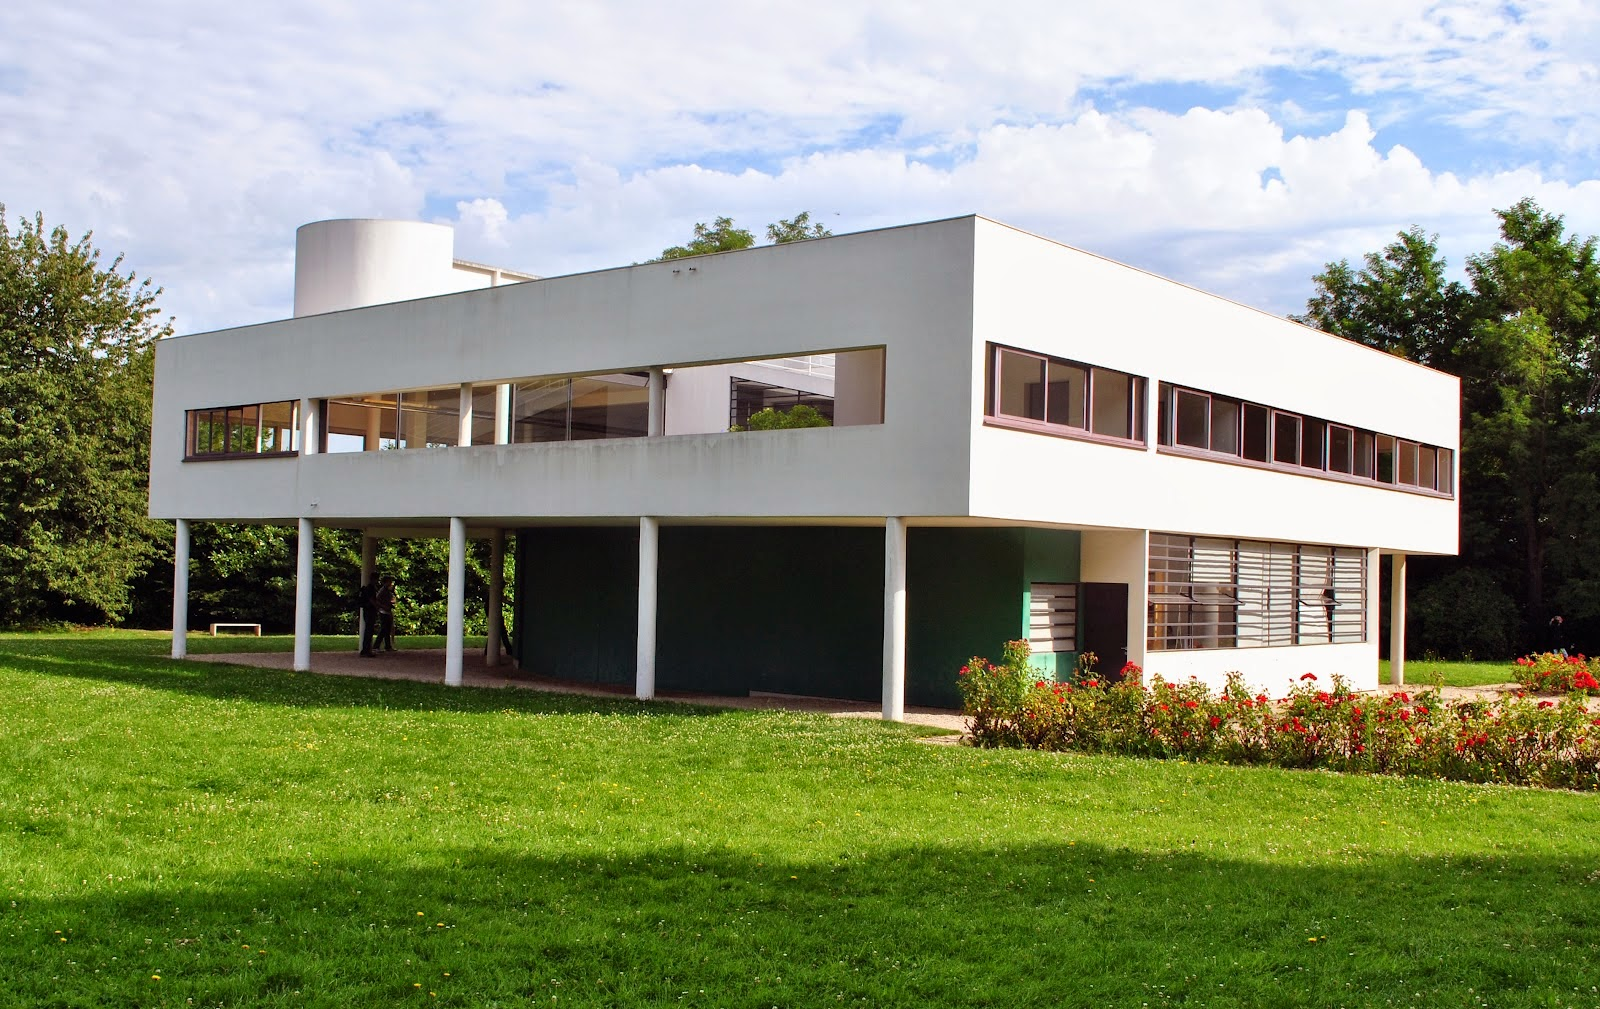 le corbusier villa savoye The villa savoye is considered the paradigm of the house as a 'machine à habiter', as well as the archetype of the international architecture and a new way to build a residential buildings in the xx century.